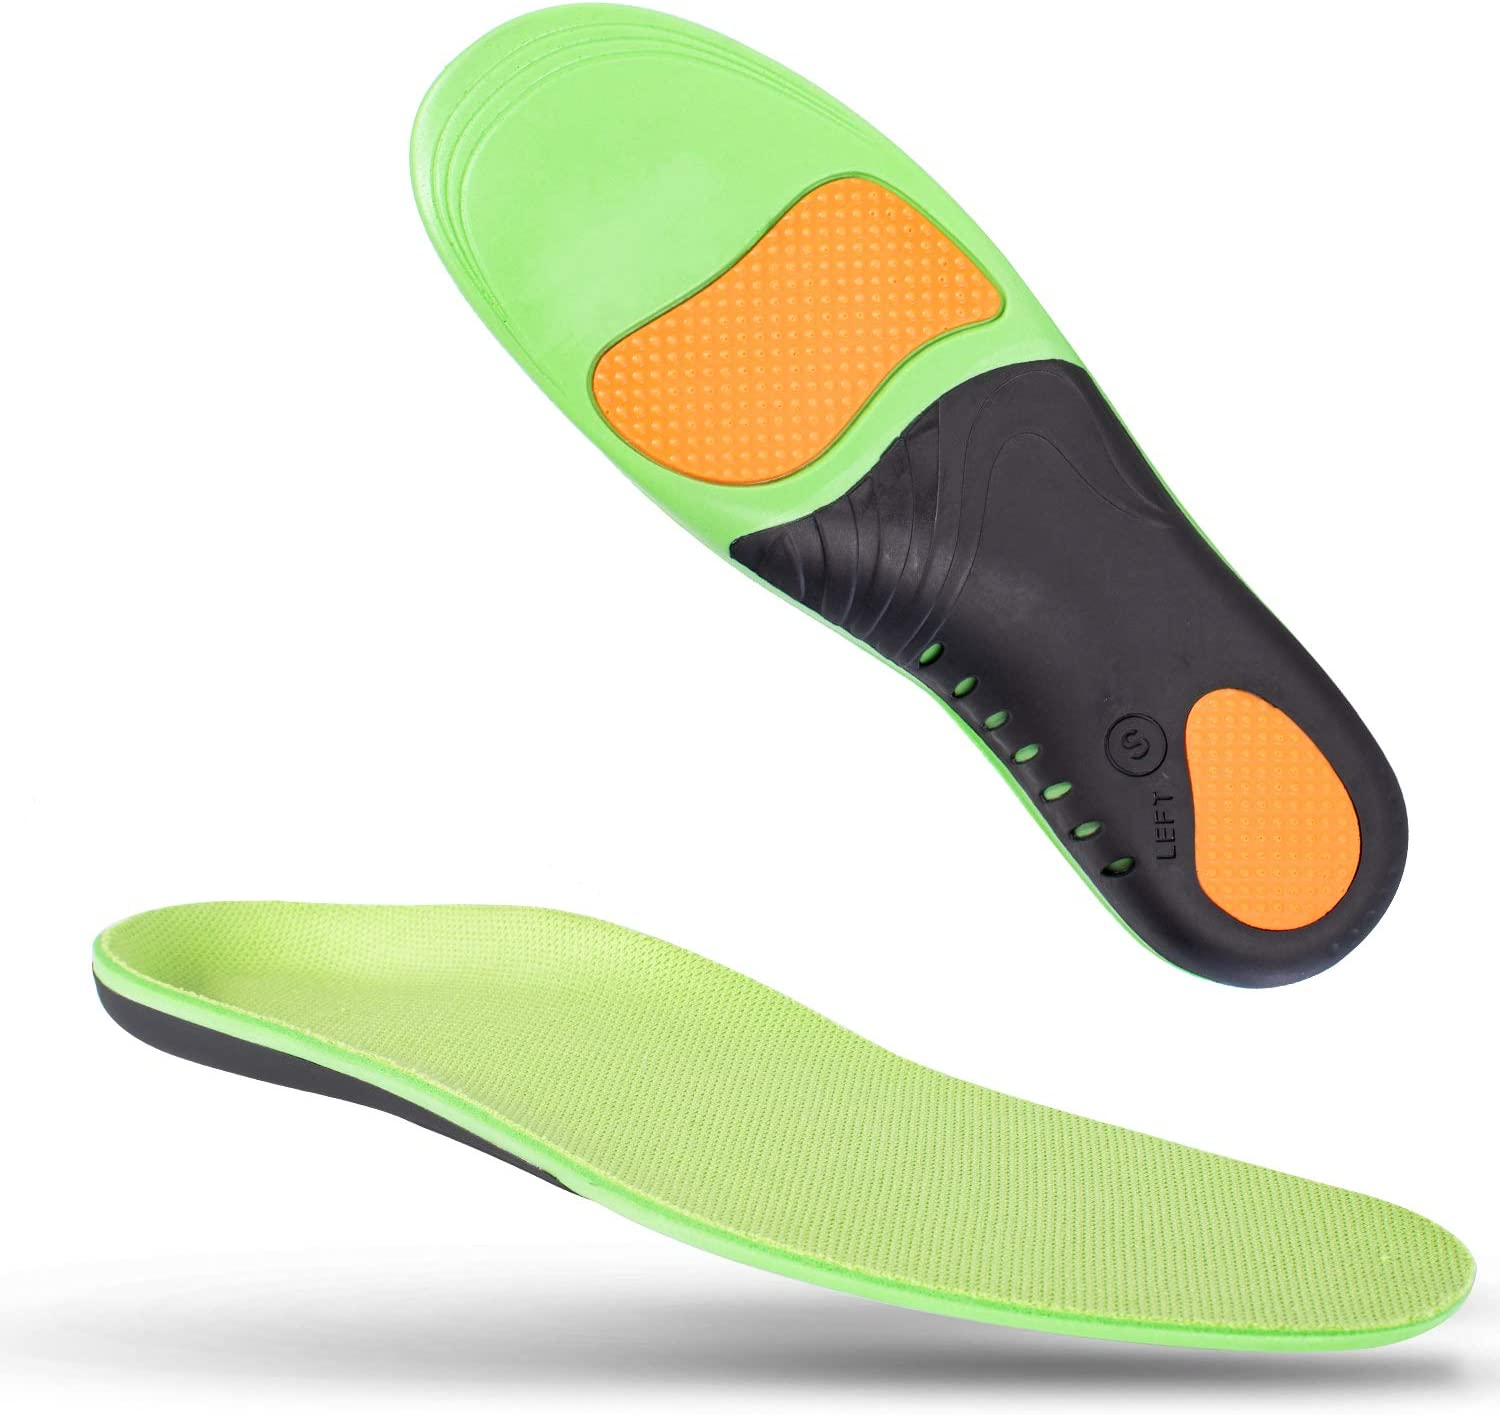 """Shoe Insoles for Men Arch Supports Orthotics (2pair) Arch Pain Plantar Fasciitis Feet Insoles Inserts Relieve Flat Feet High Arch Foot Pain for Men Women (Green, (2pair) L: M10-12 / W 11-13 (11.81"""")): Health & Personal Care"""